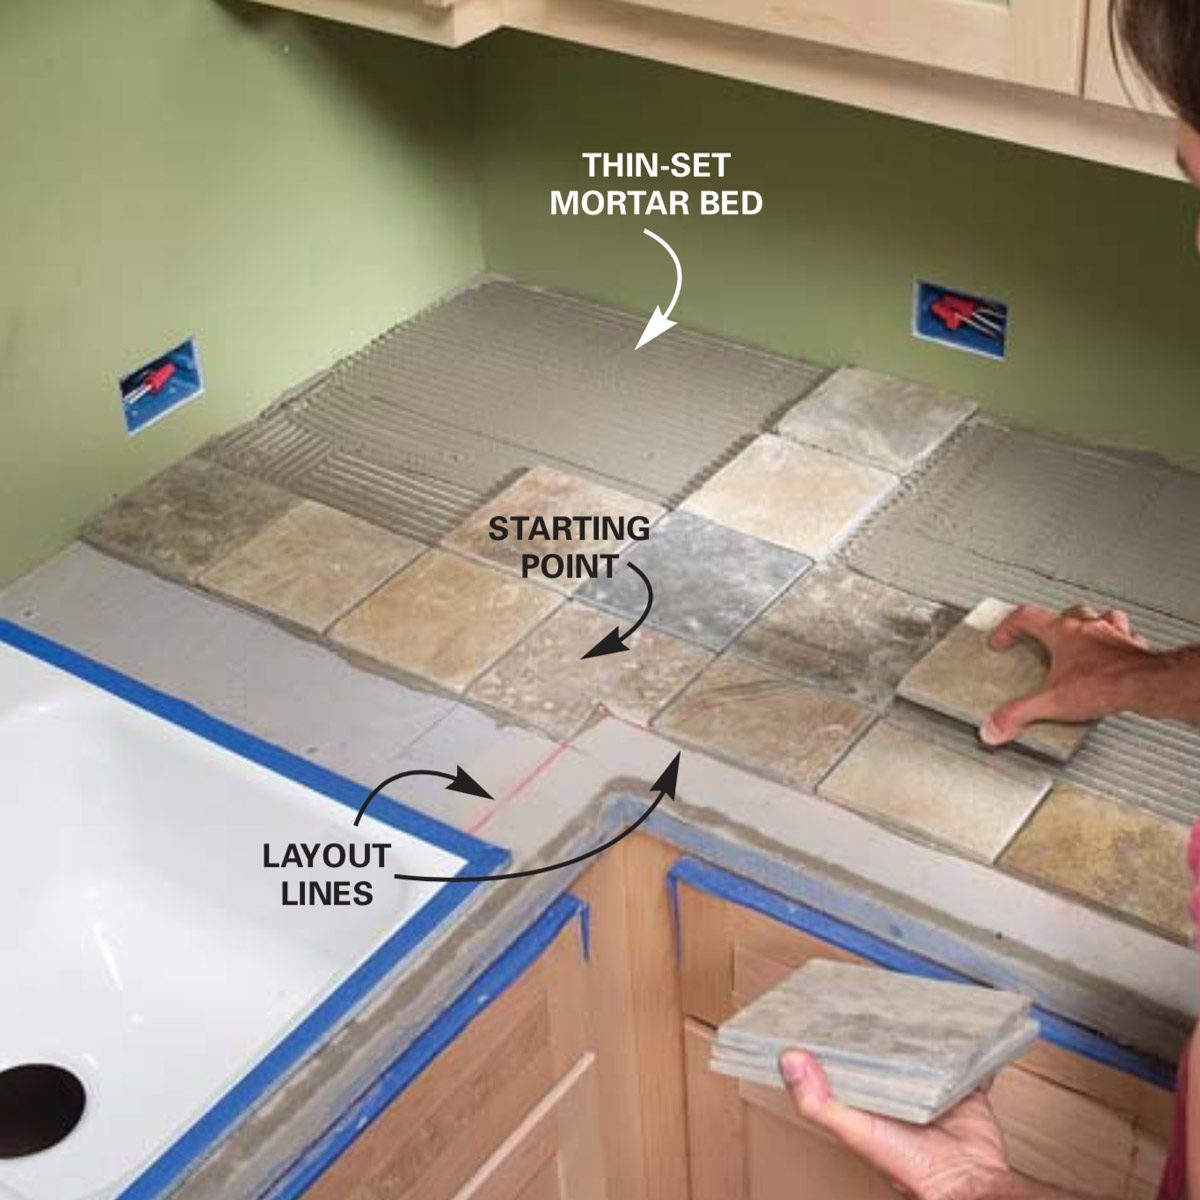 Check Your Layout And Start Tiling Lay The Tile On A Bed Of Mortar